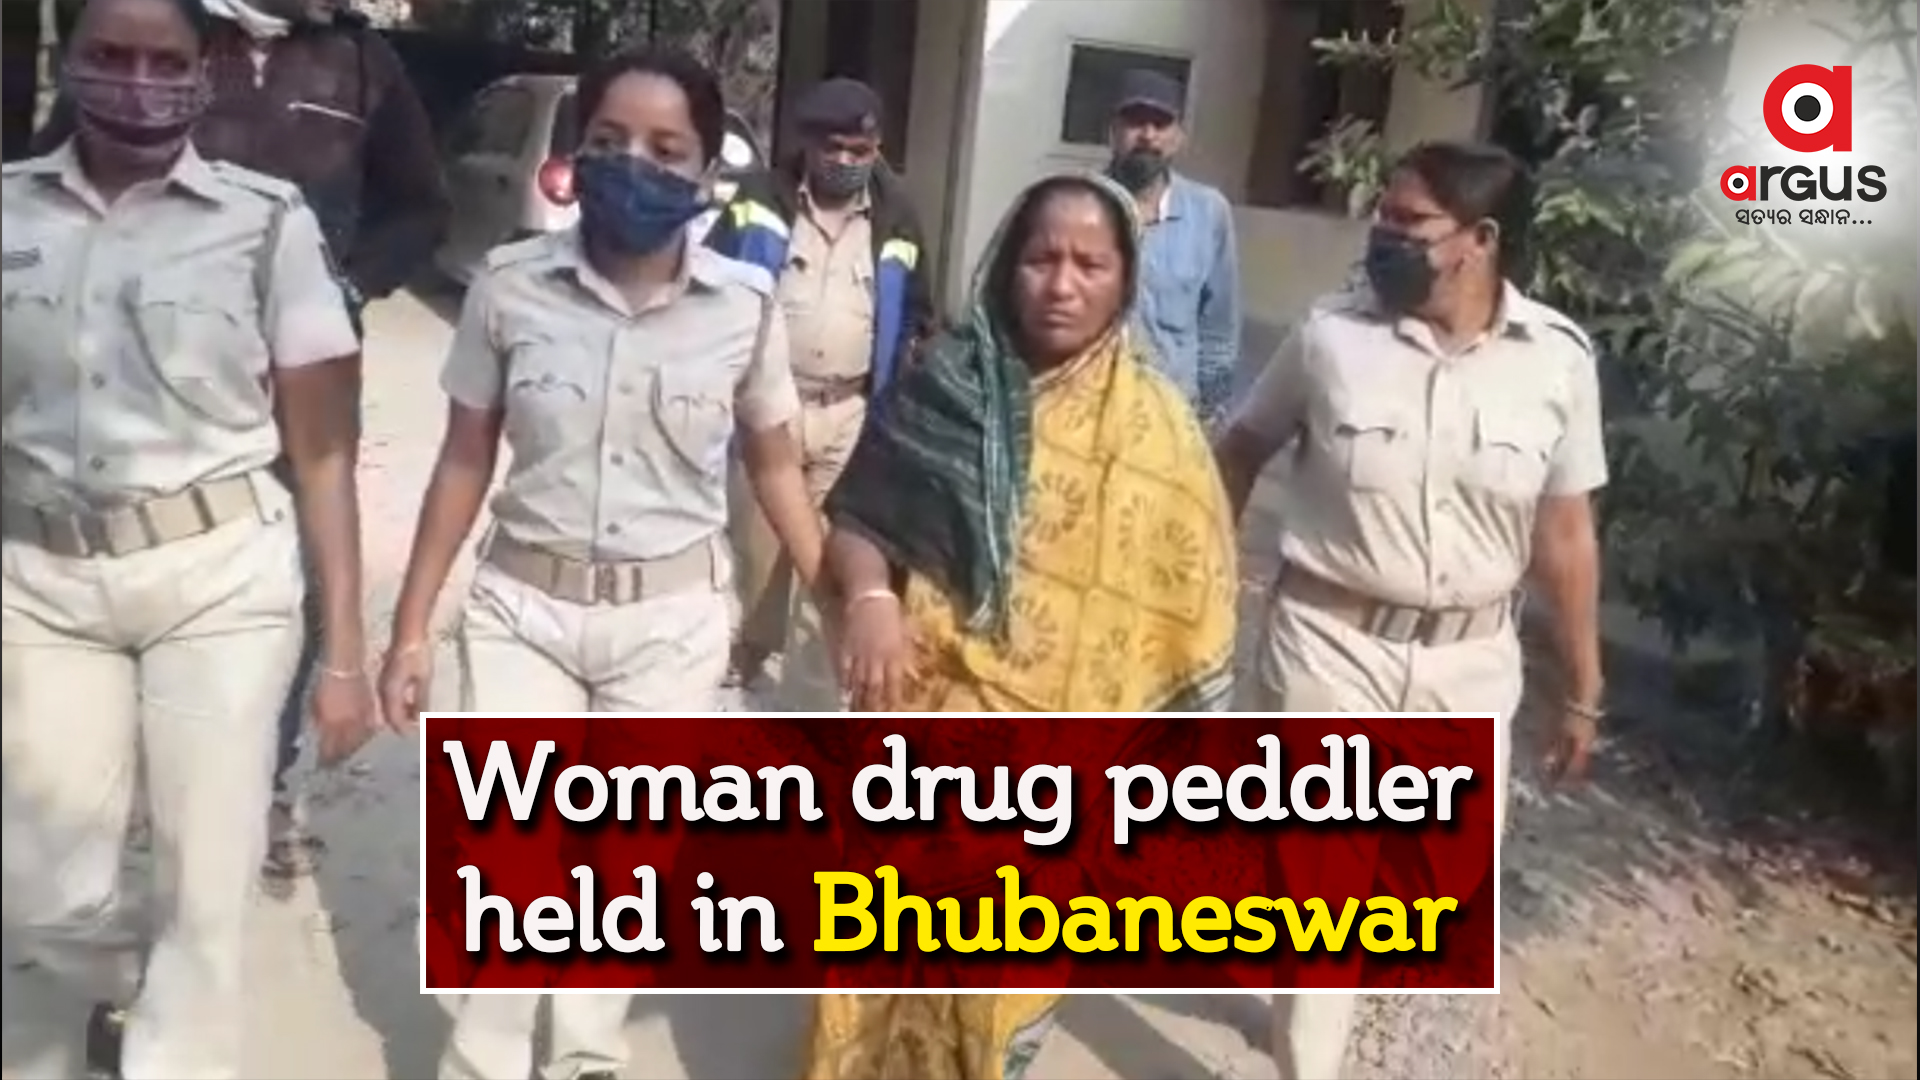 185 gram brown sugar seized, woman drug paddler held  in Bhubaneswar